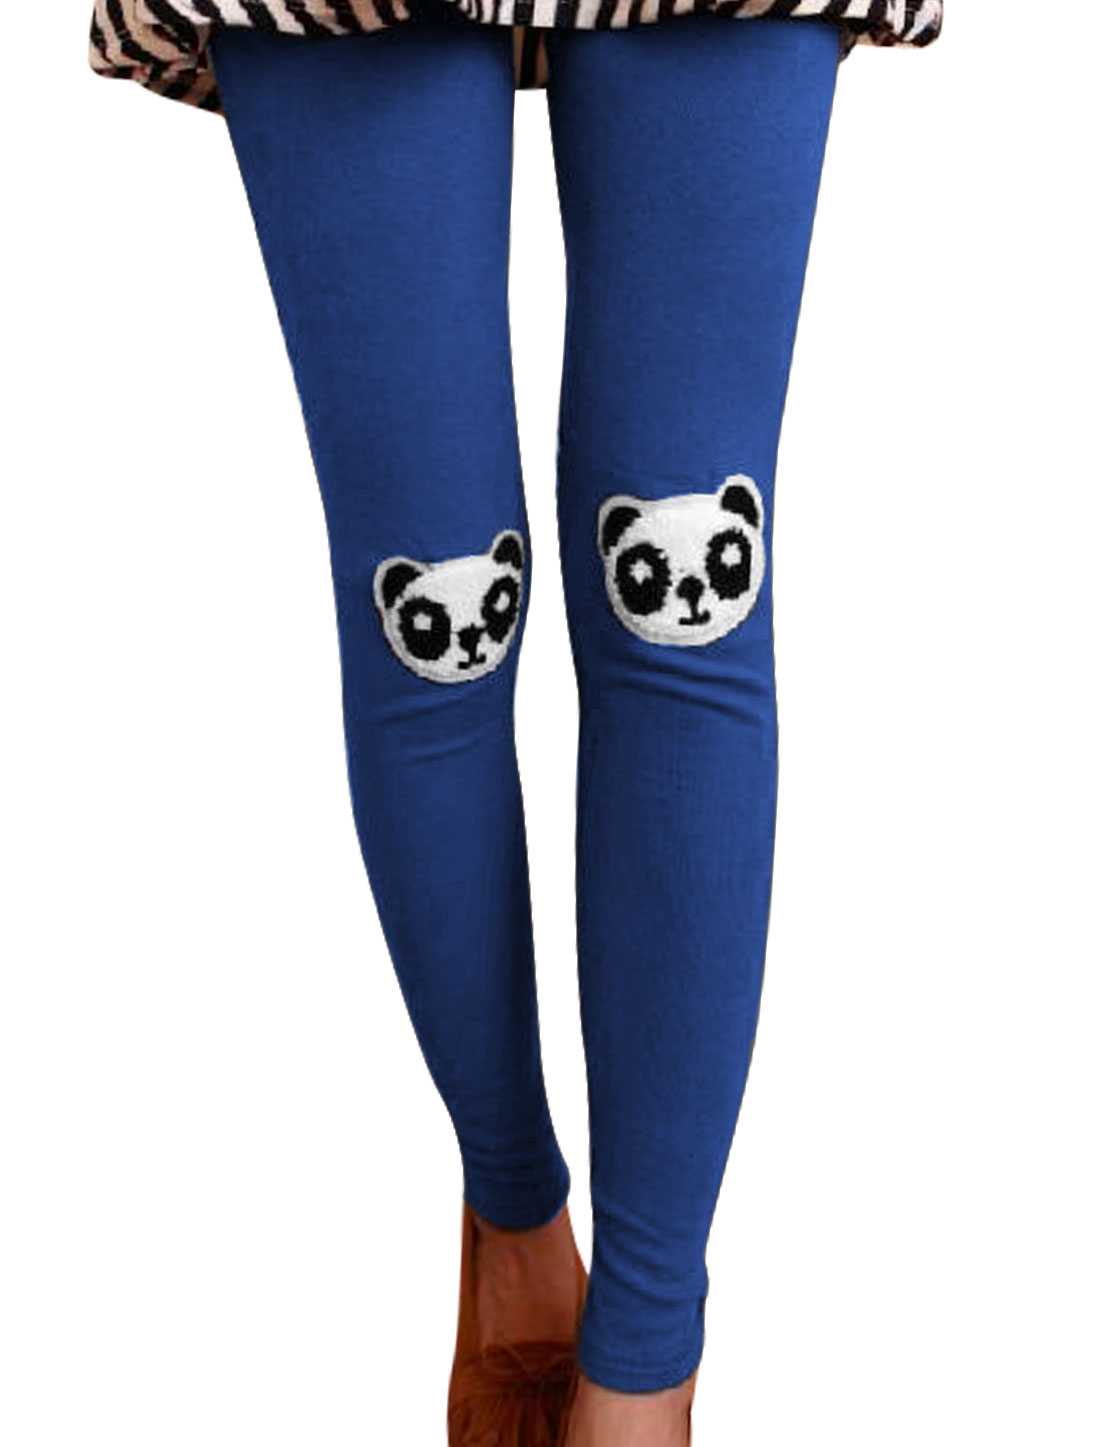 Sweet Panda Applique Stretchy Royal Blue Leggings for Women XS